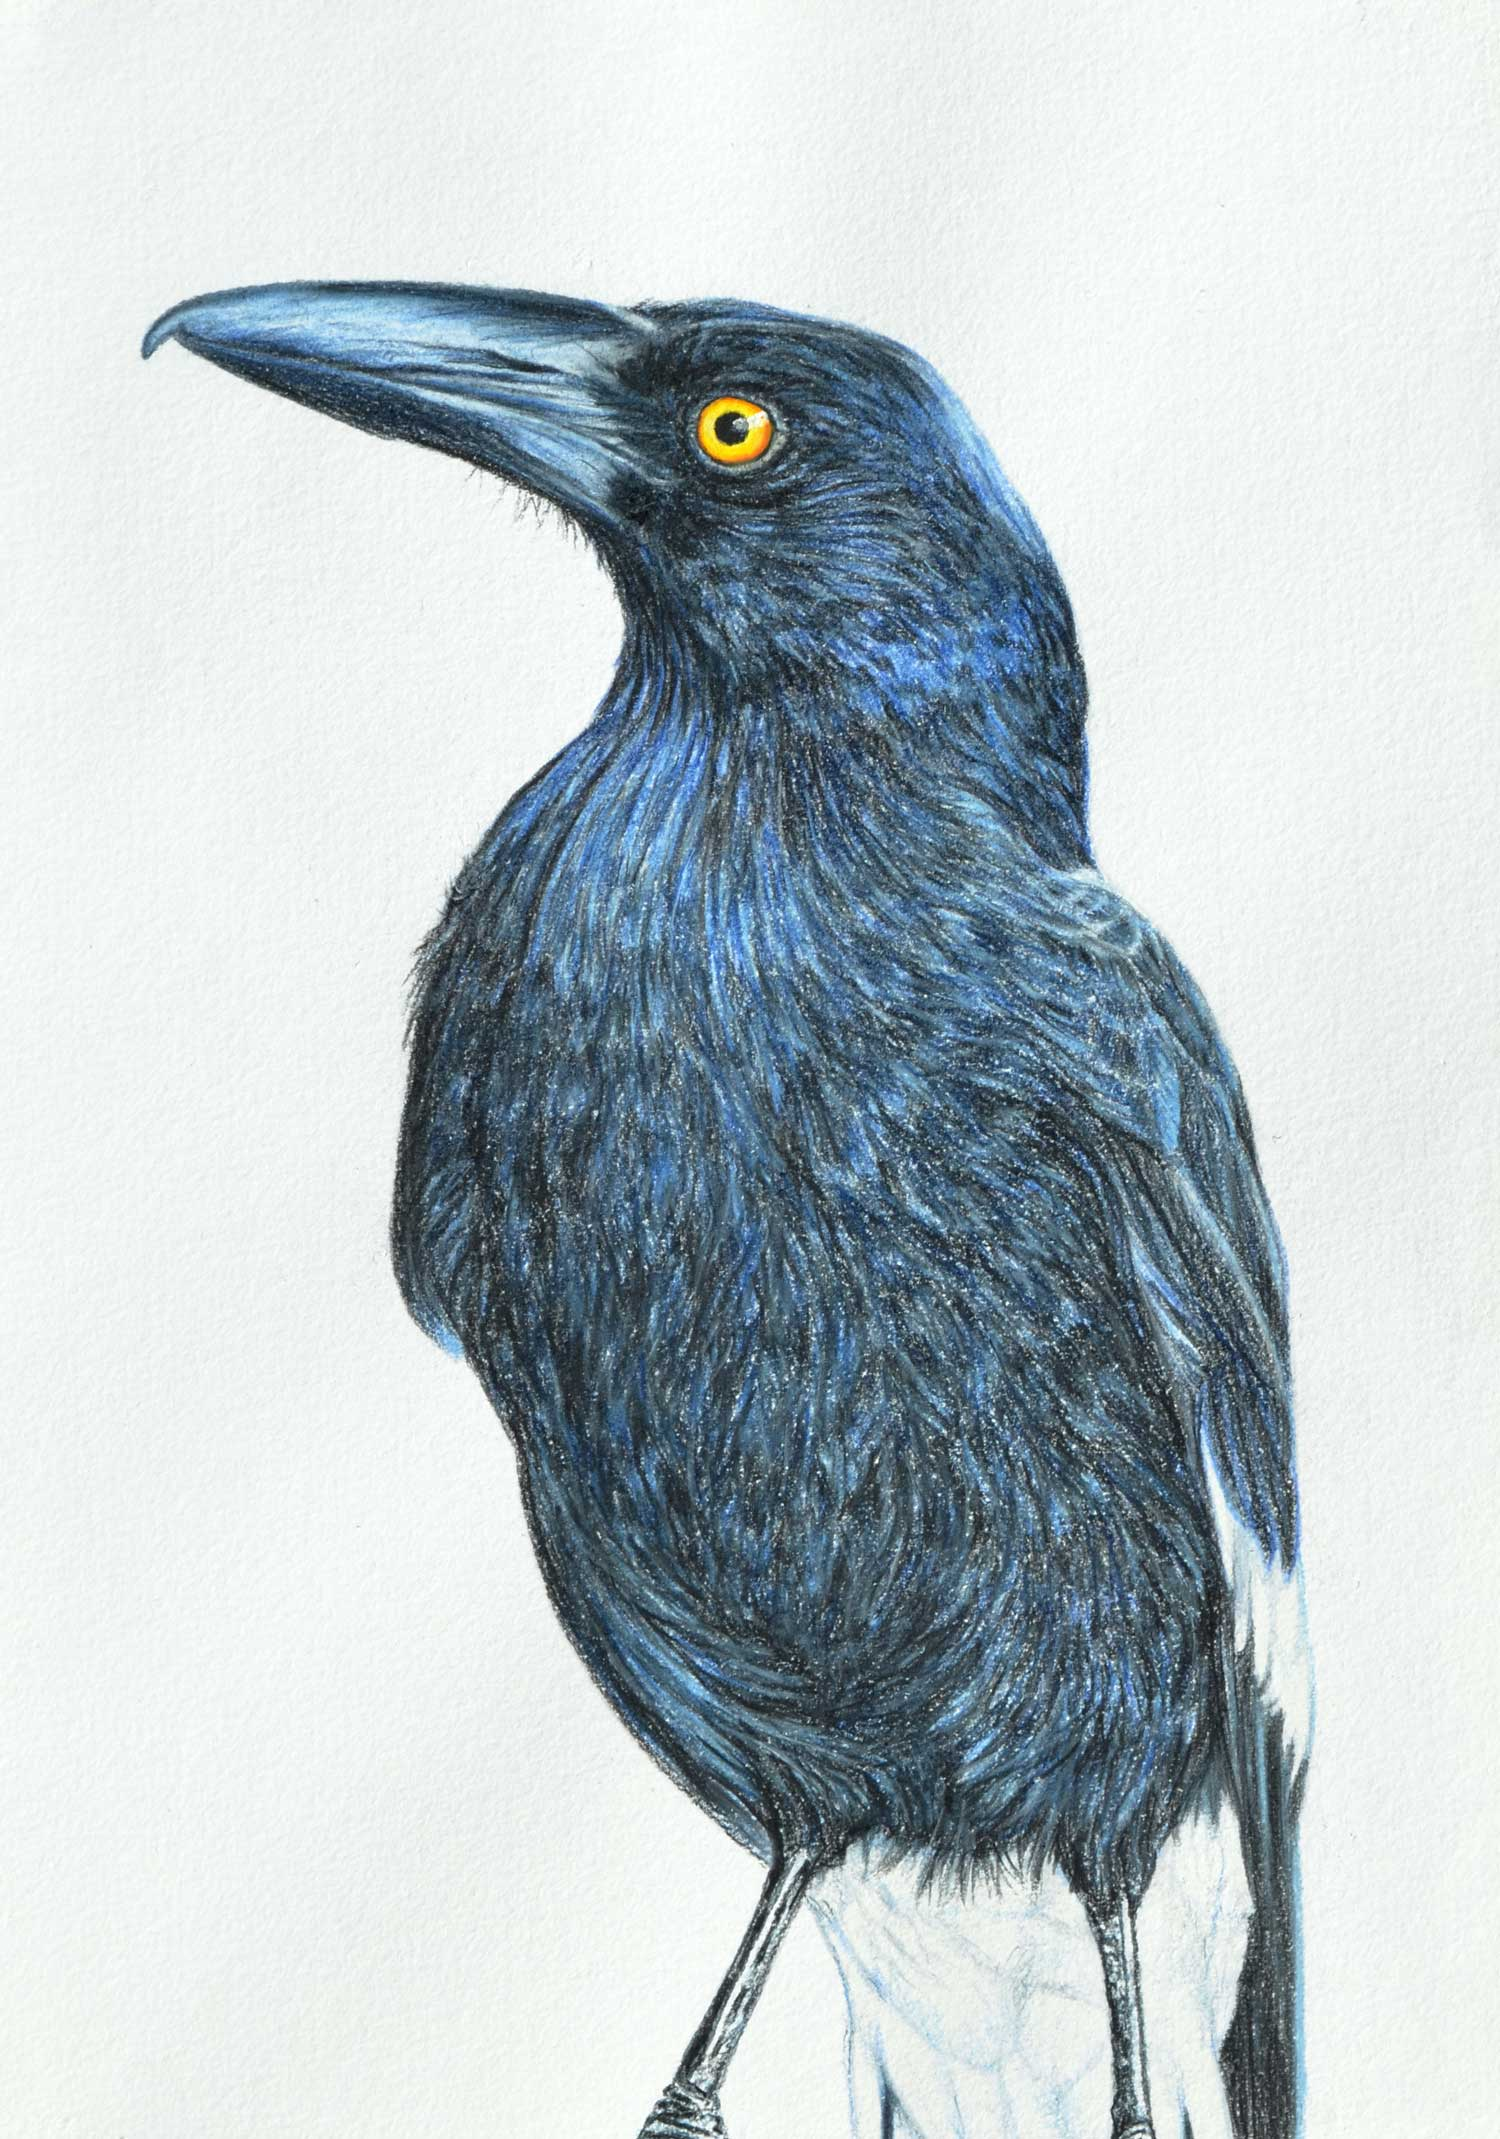 Currawong  41 x 31 CM, PASTEL ON HANDMADE PAPER  Available as a limited edition print  $750